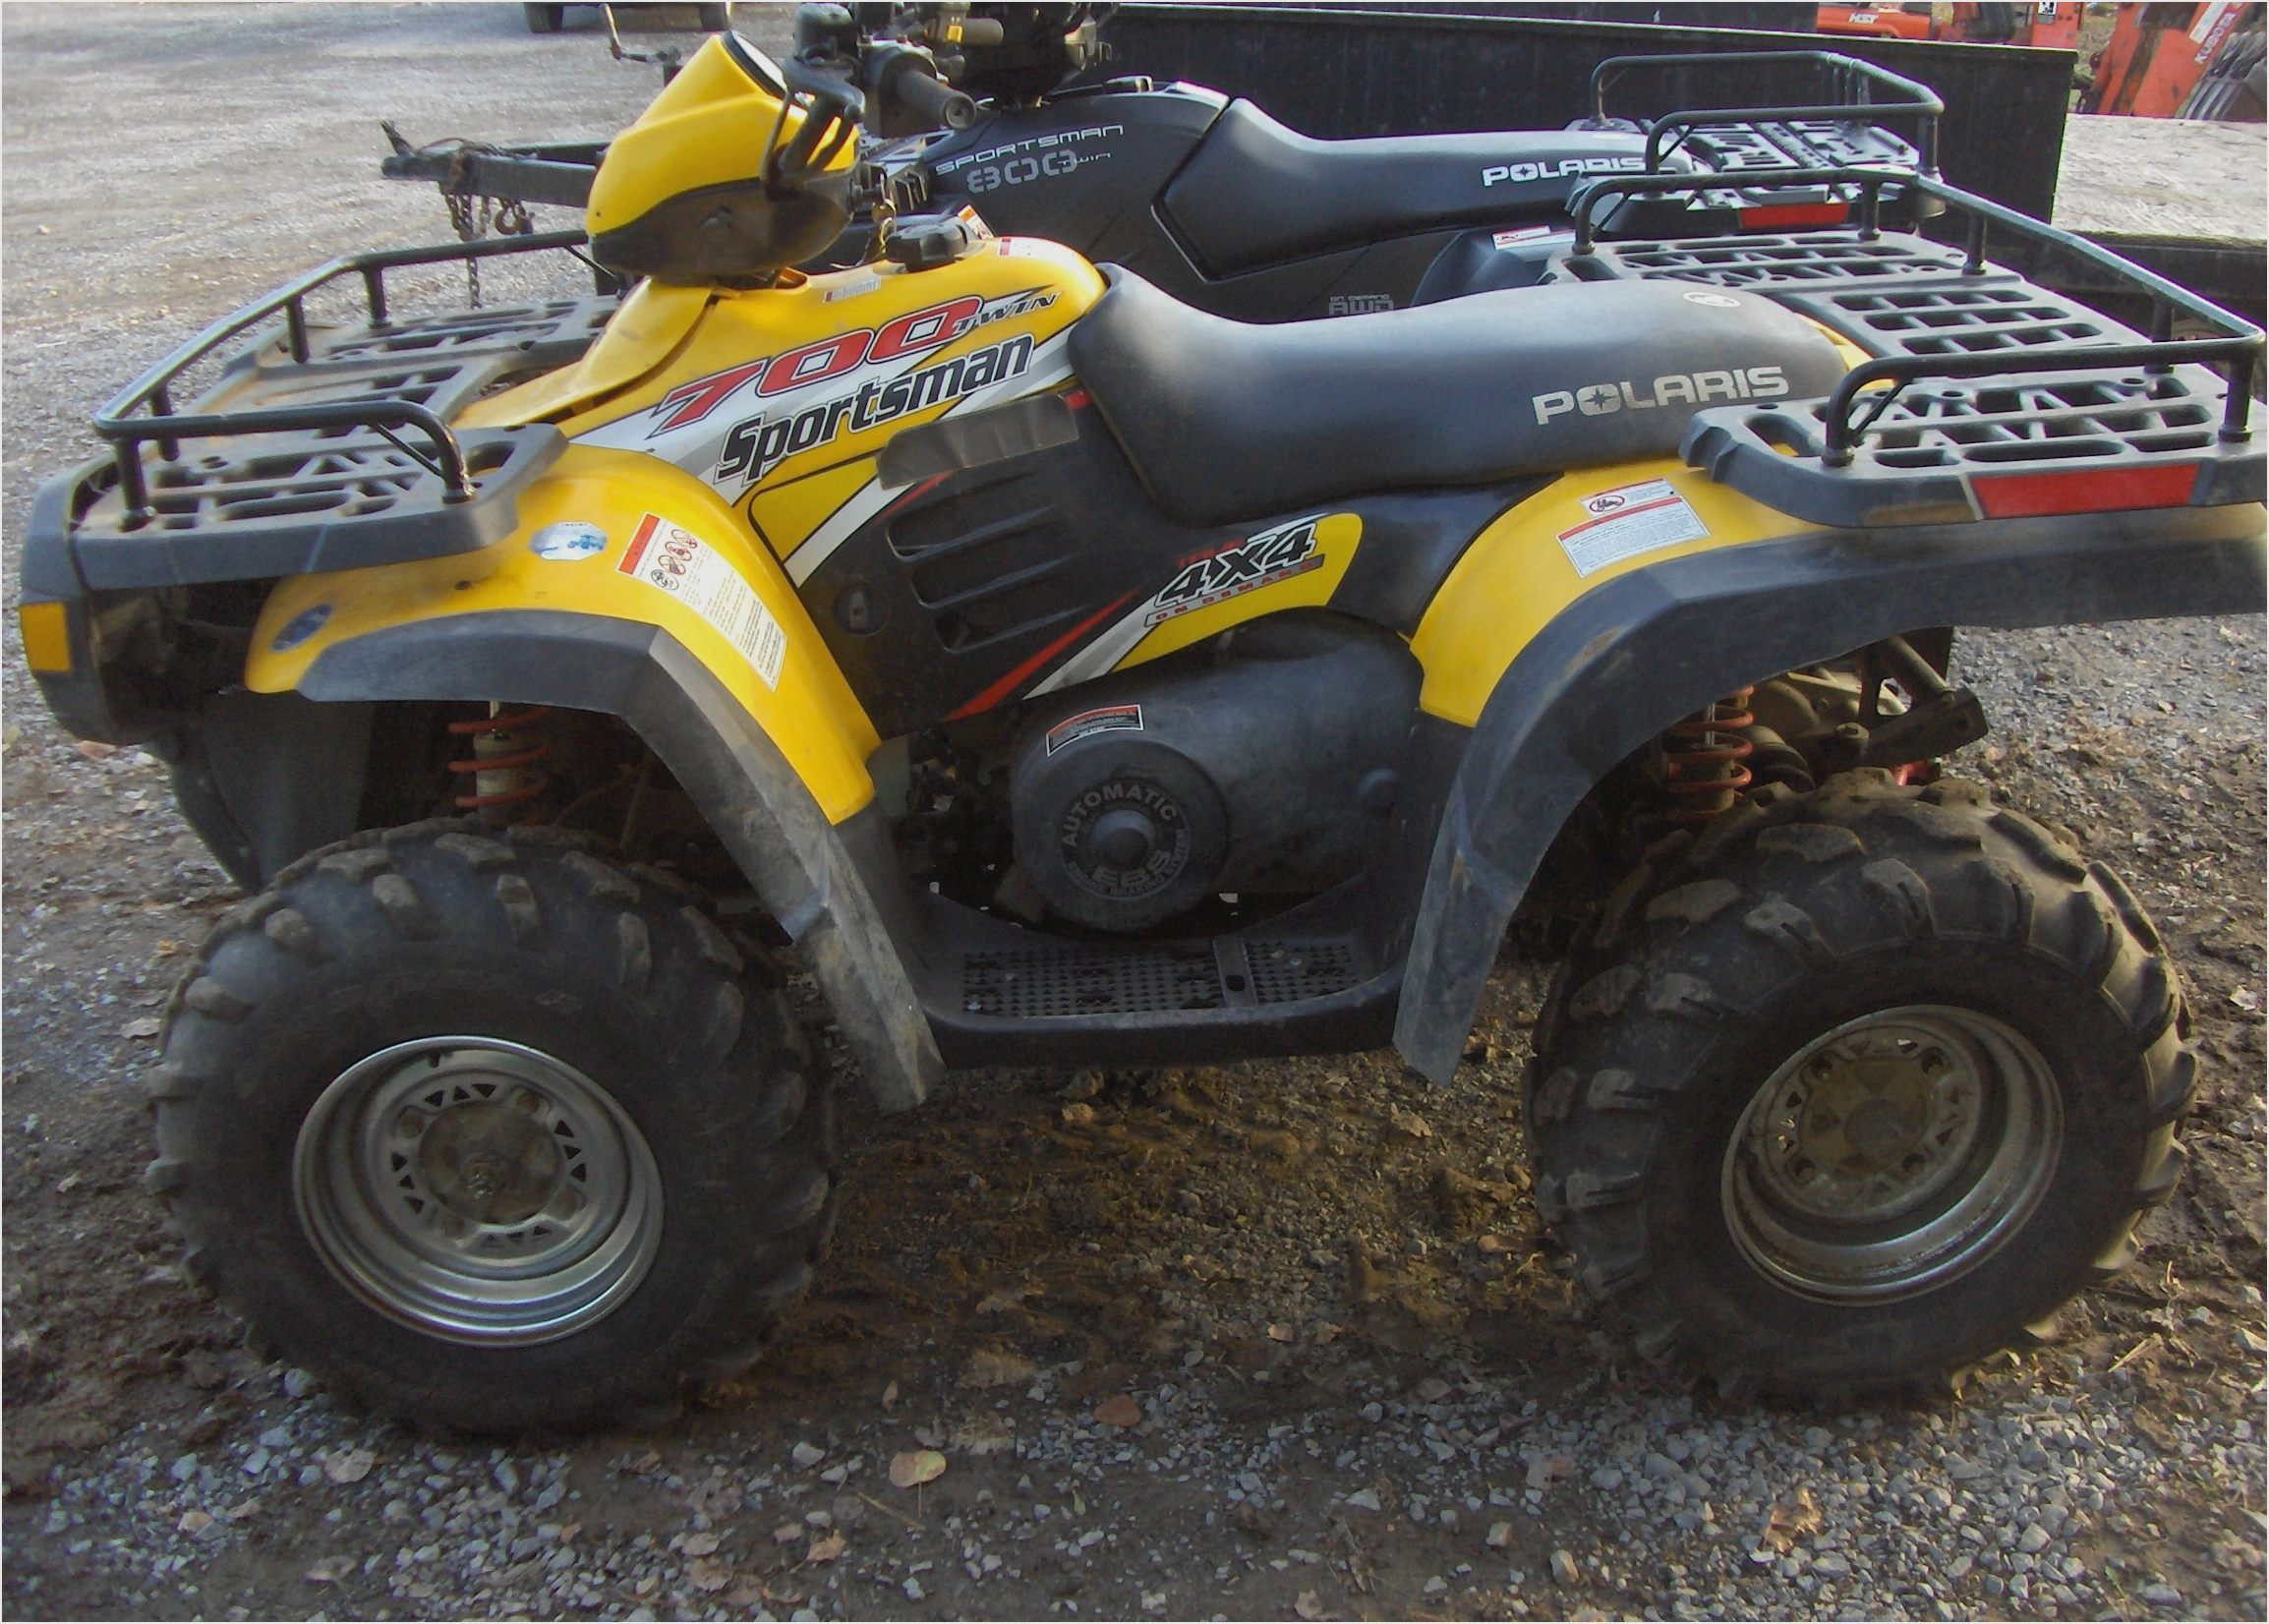 Polaris Sportsman 700 images #169362